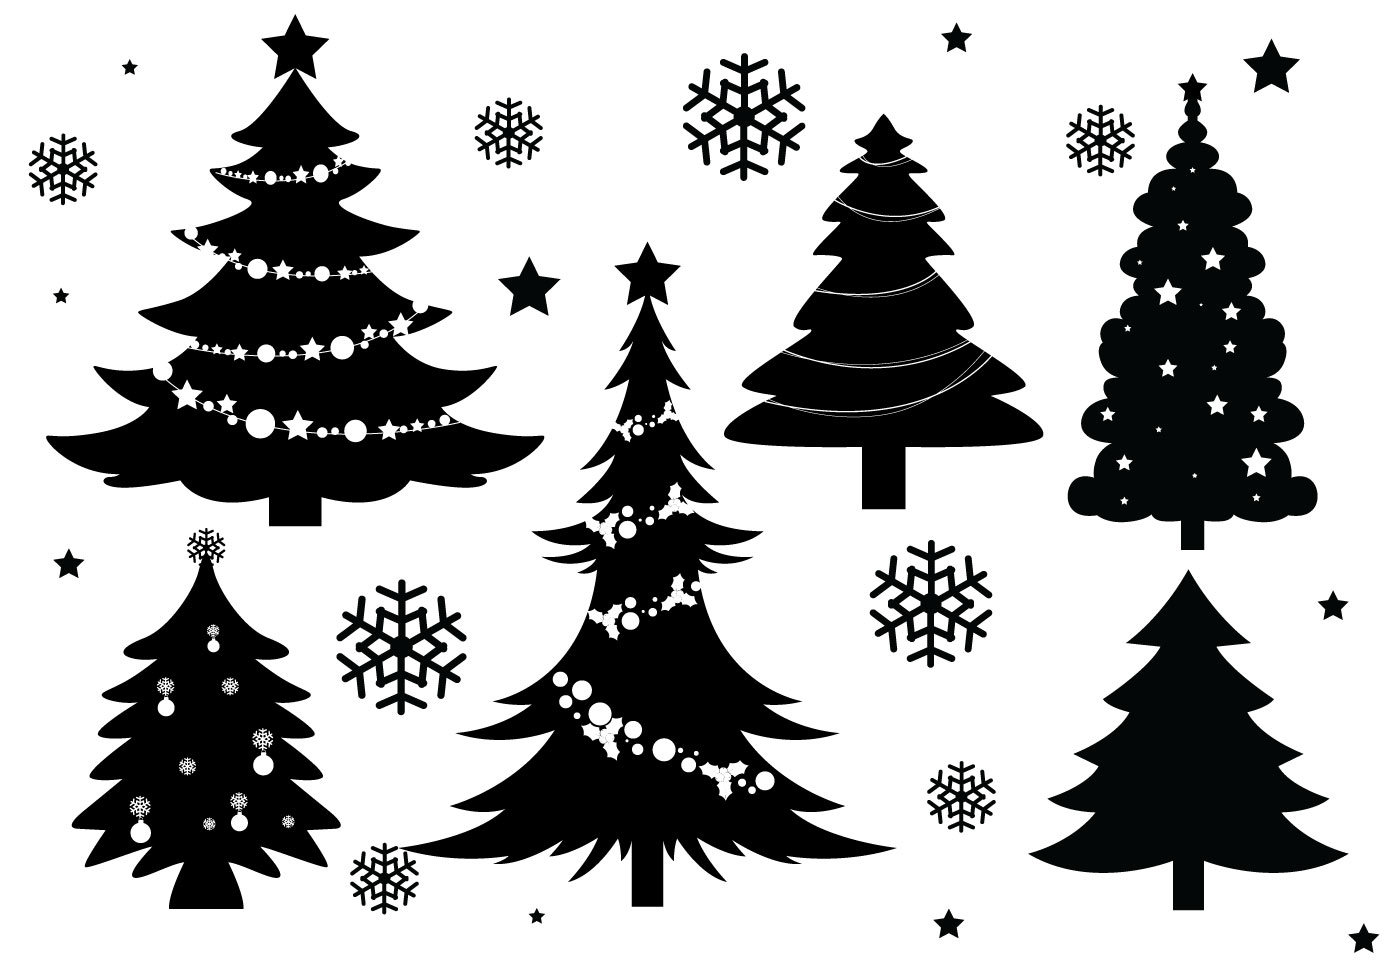 Christmas Tree Silhouette Vectors  Download Free Vector. How To Make Christmas Decorations Uk. Bargain Christmas Decorations Sale. Christmas Decorations State Street Chicago. Christmas Decorations In Nyc 2016. Christmas Hanging Decorations Images. Simple Indoor Christmas Decorations Ideas. Blow Up Christmas Decorations Uk. Christmas Decorations Uk Marks And Spencer